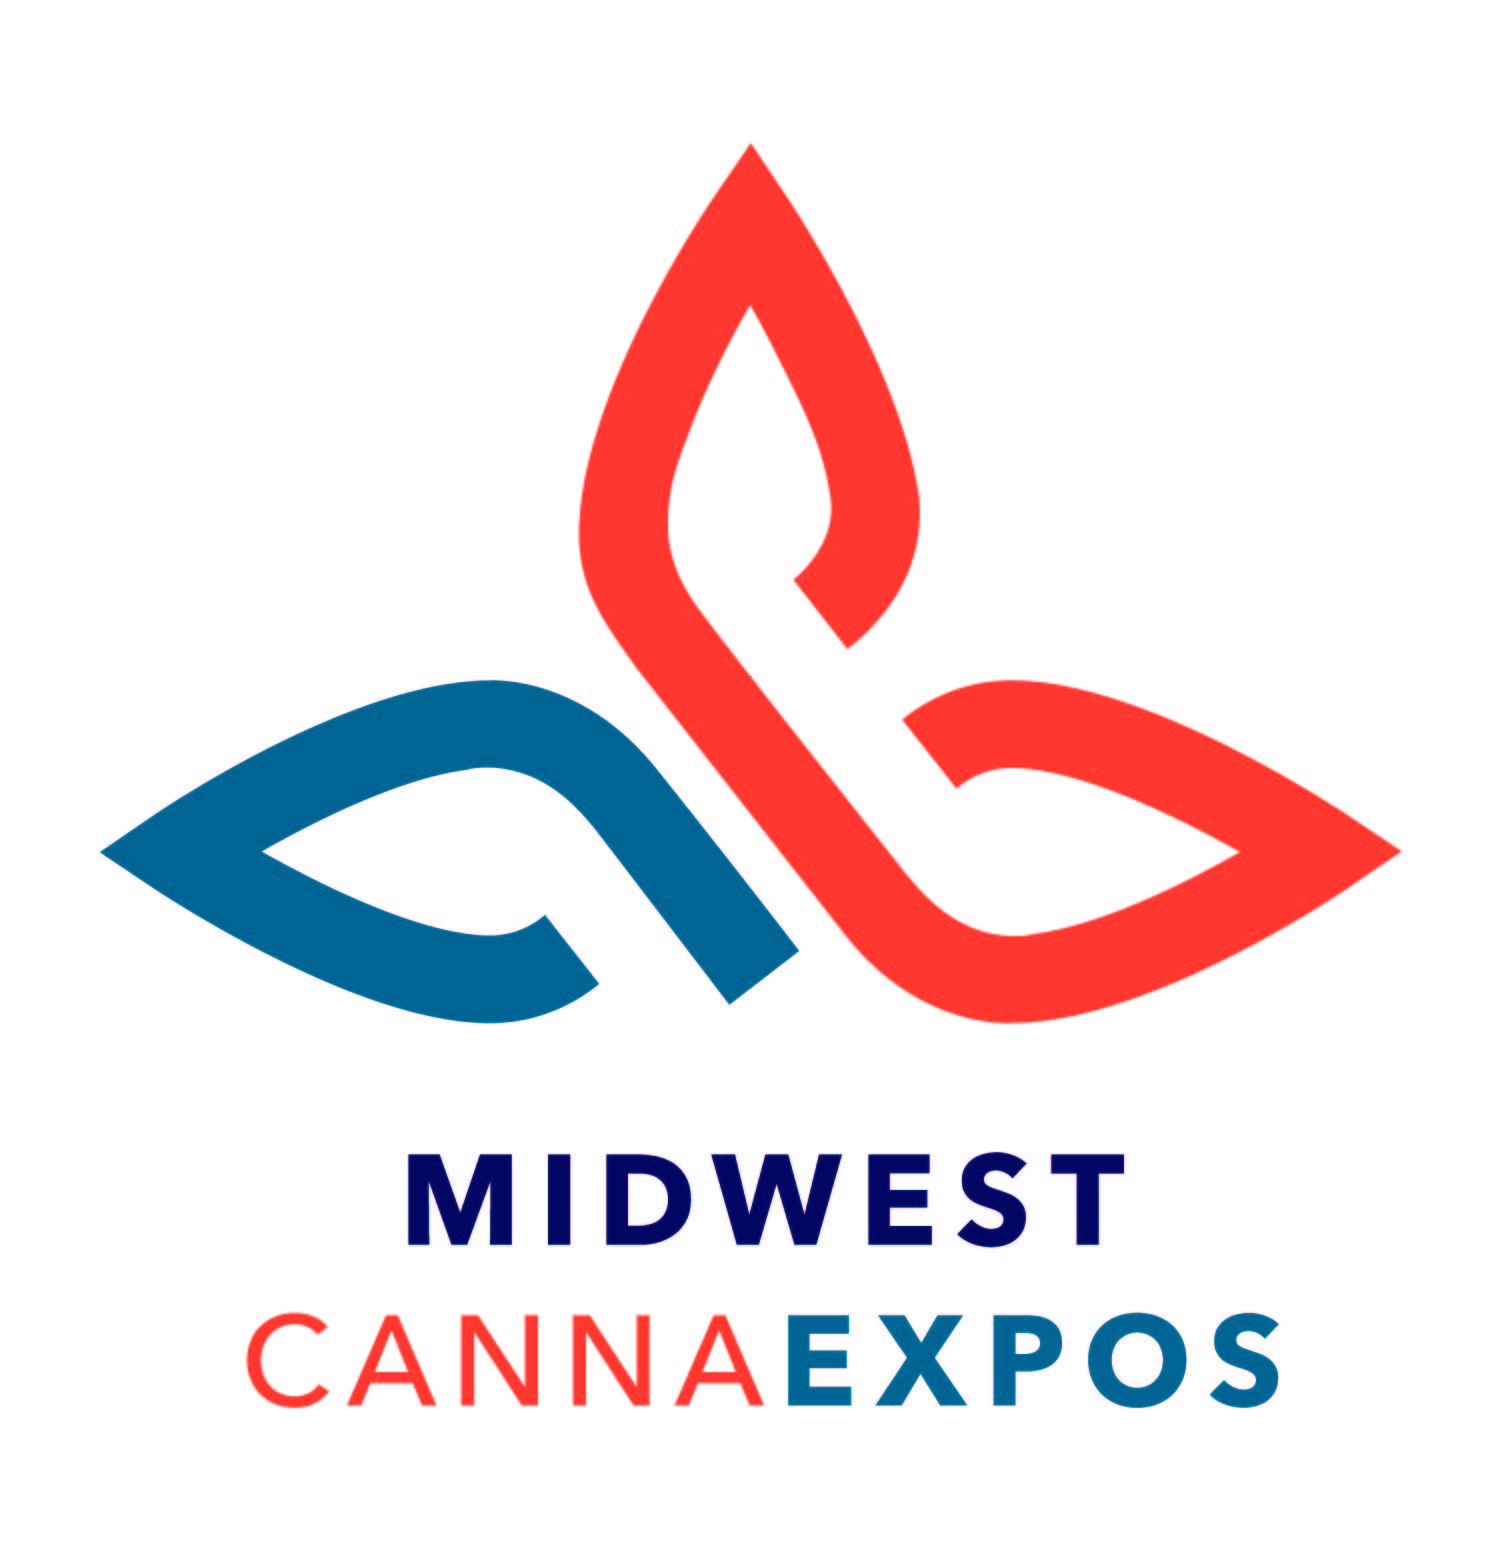 Imaginarium Enterprises BDA MidWest Canna Expos